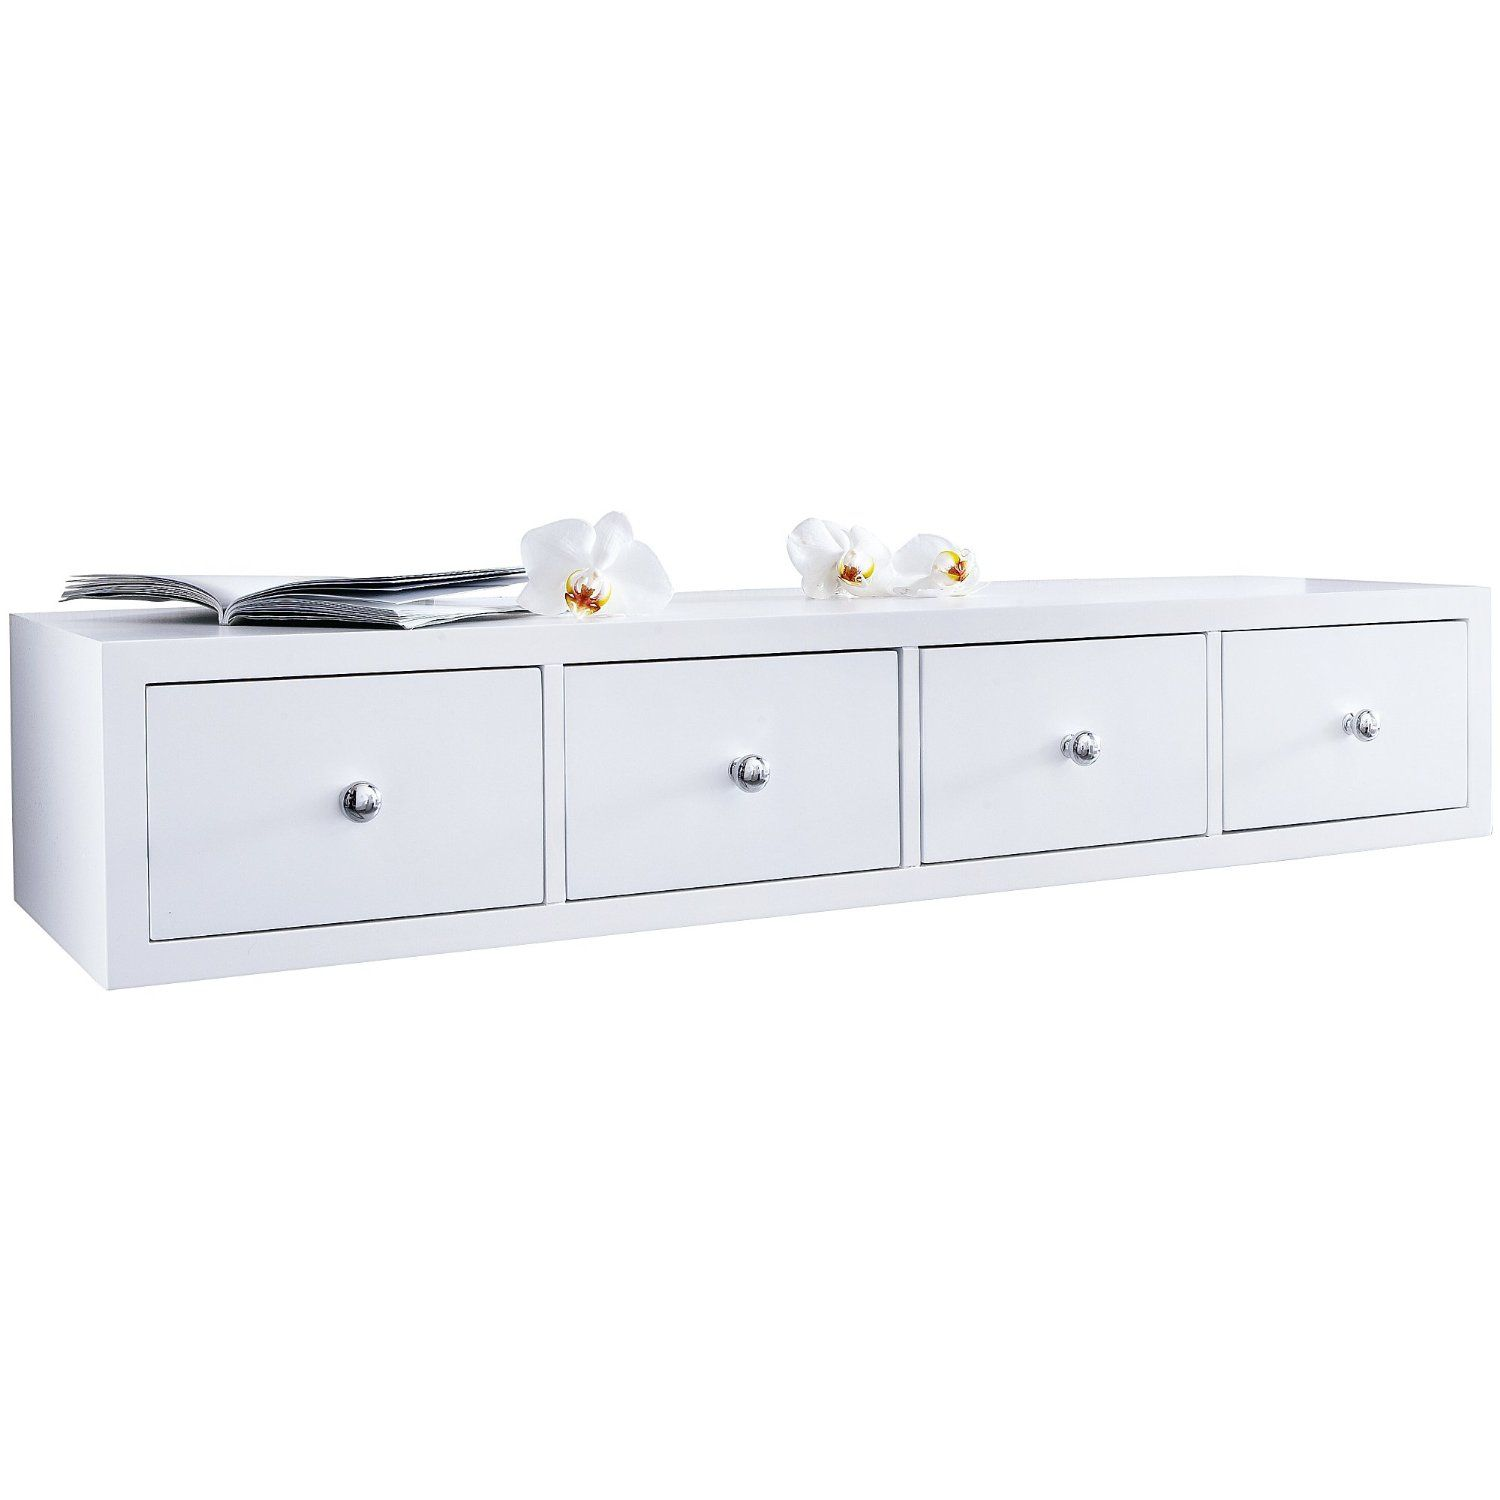 MiaVILLA White Floating Shelf With 4 Drawers: Amazon.co.uk